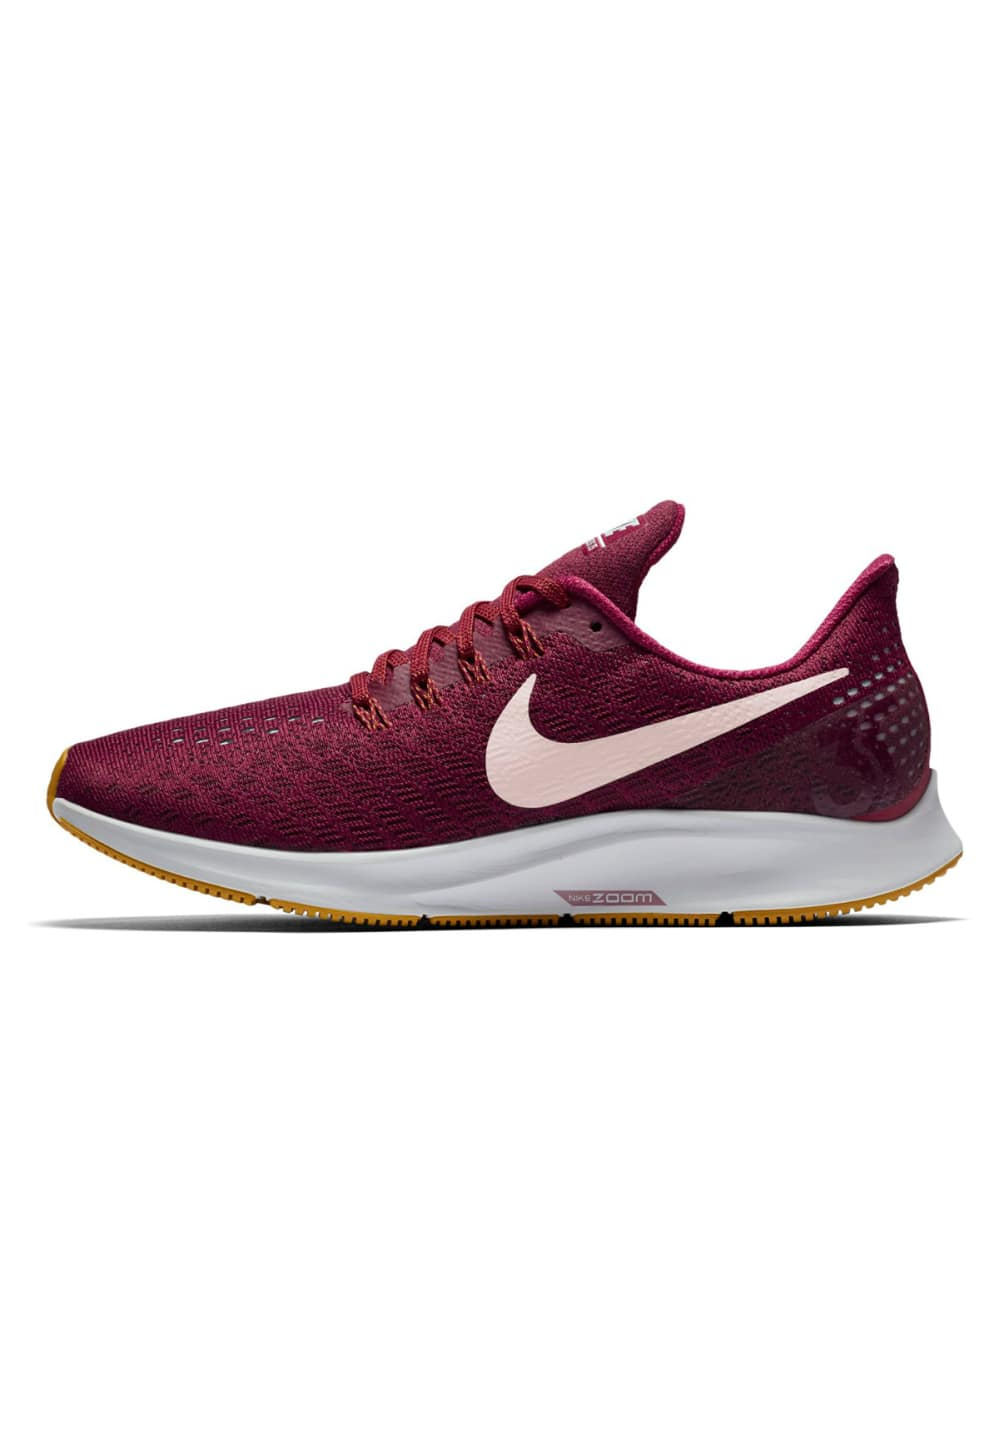 half off 64c87 b5d2f Nike Air Zoom Pegasus 35 - Running shoes for Women - Red